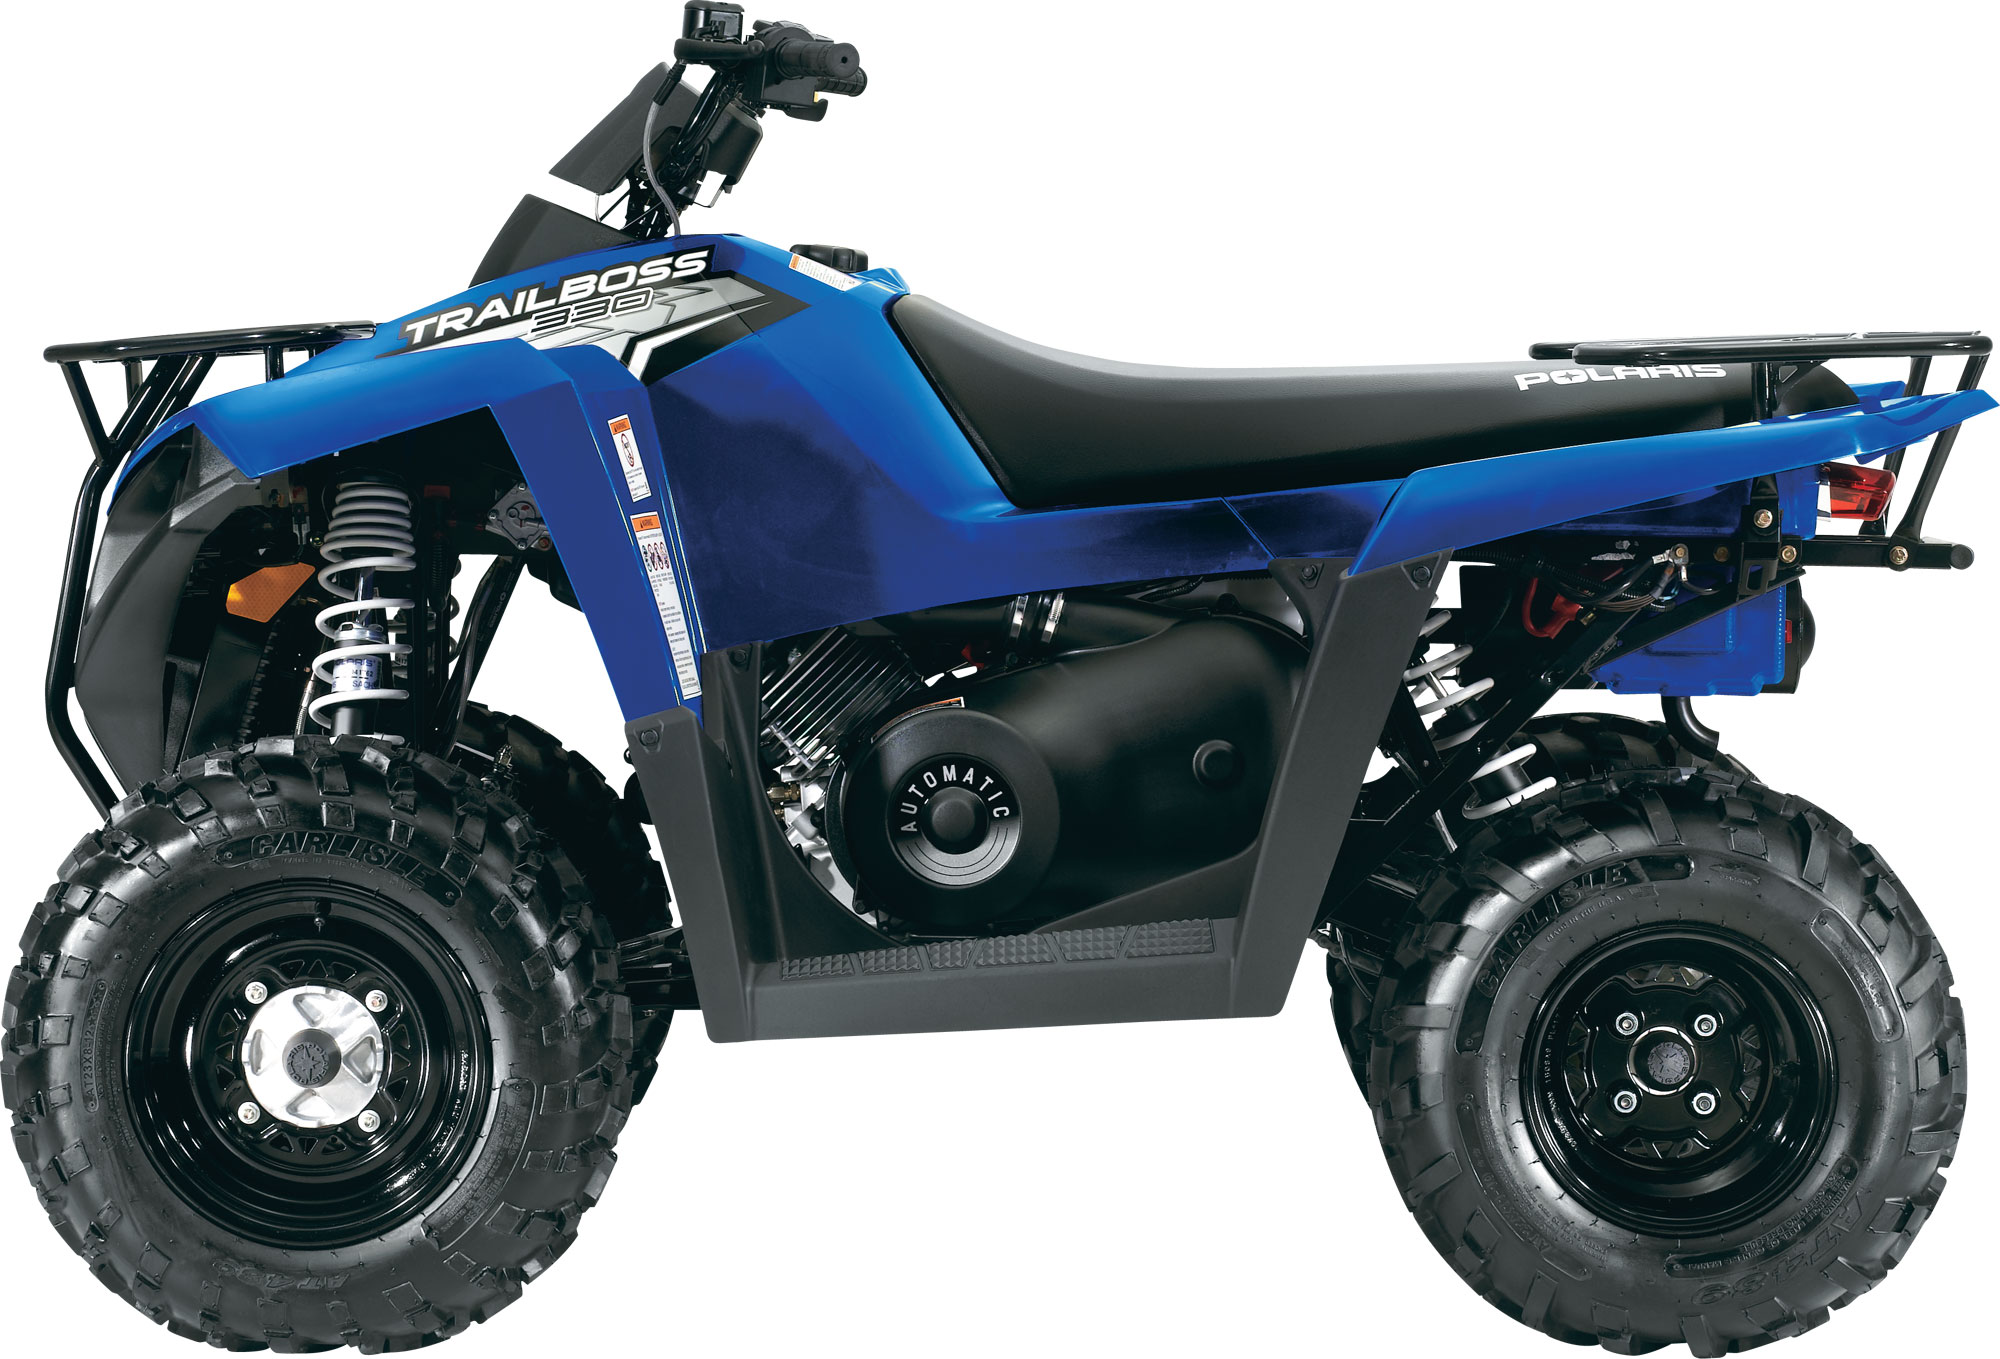 Polaris Trail Boss 330 2008 images #169663